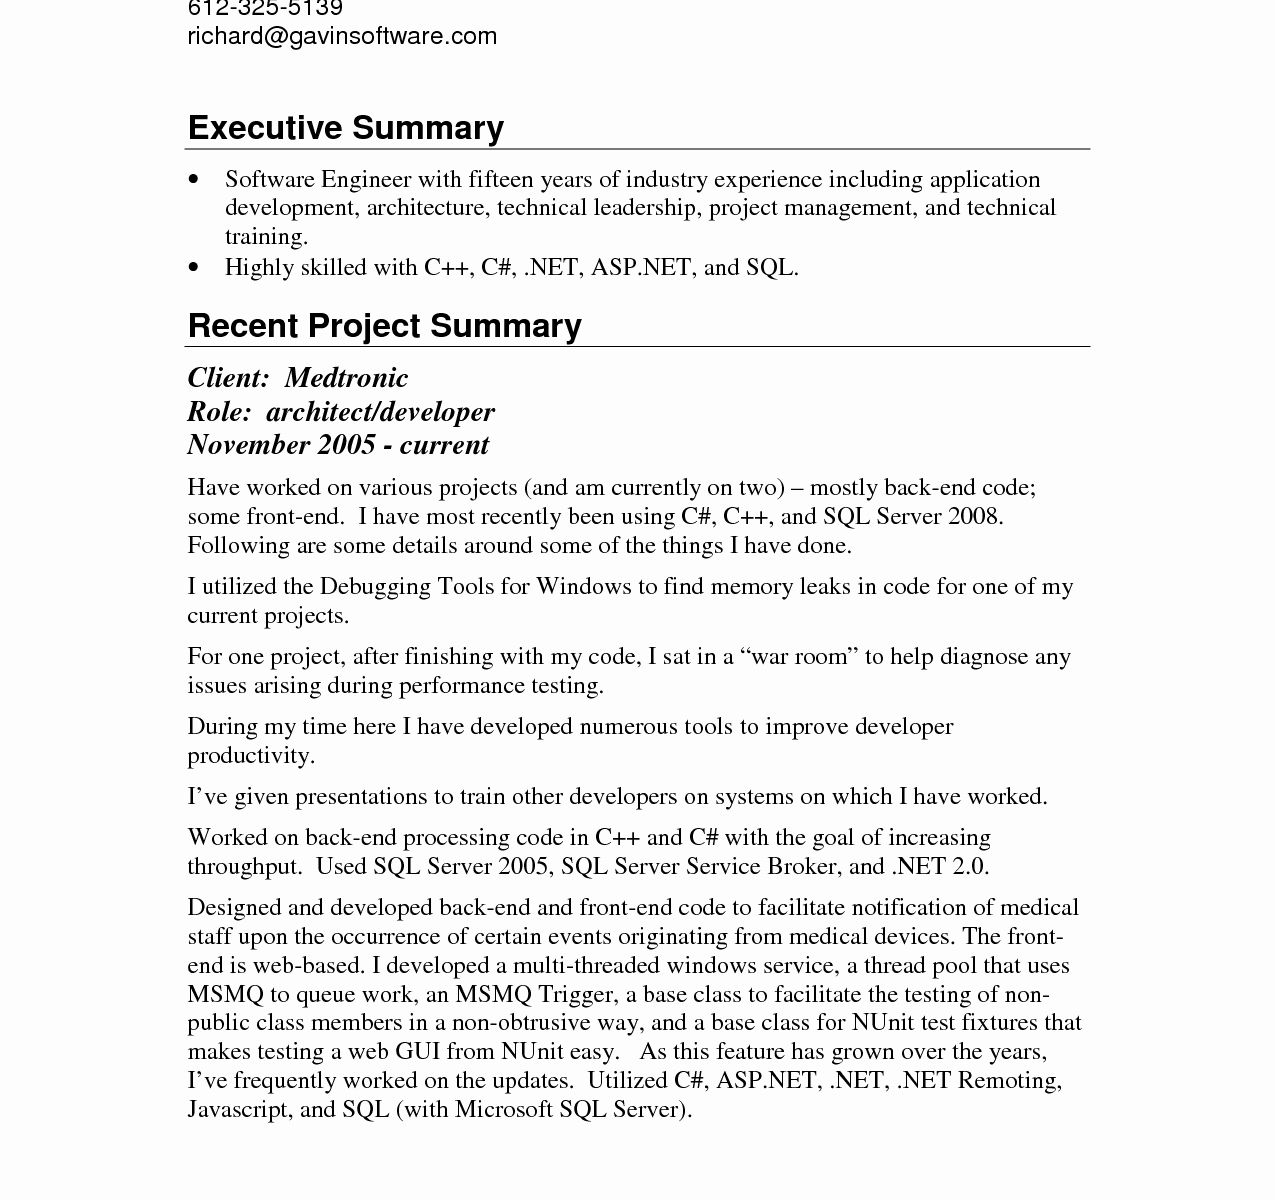 Executive Summary Sample for Proposal Fresh Business Plan